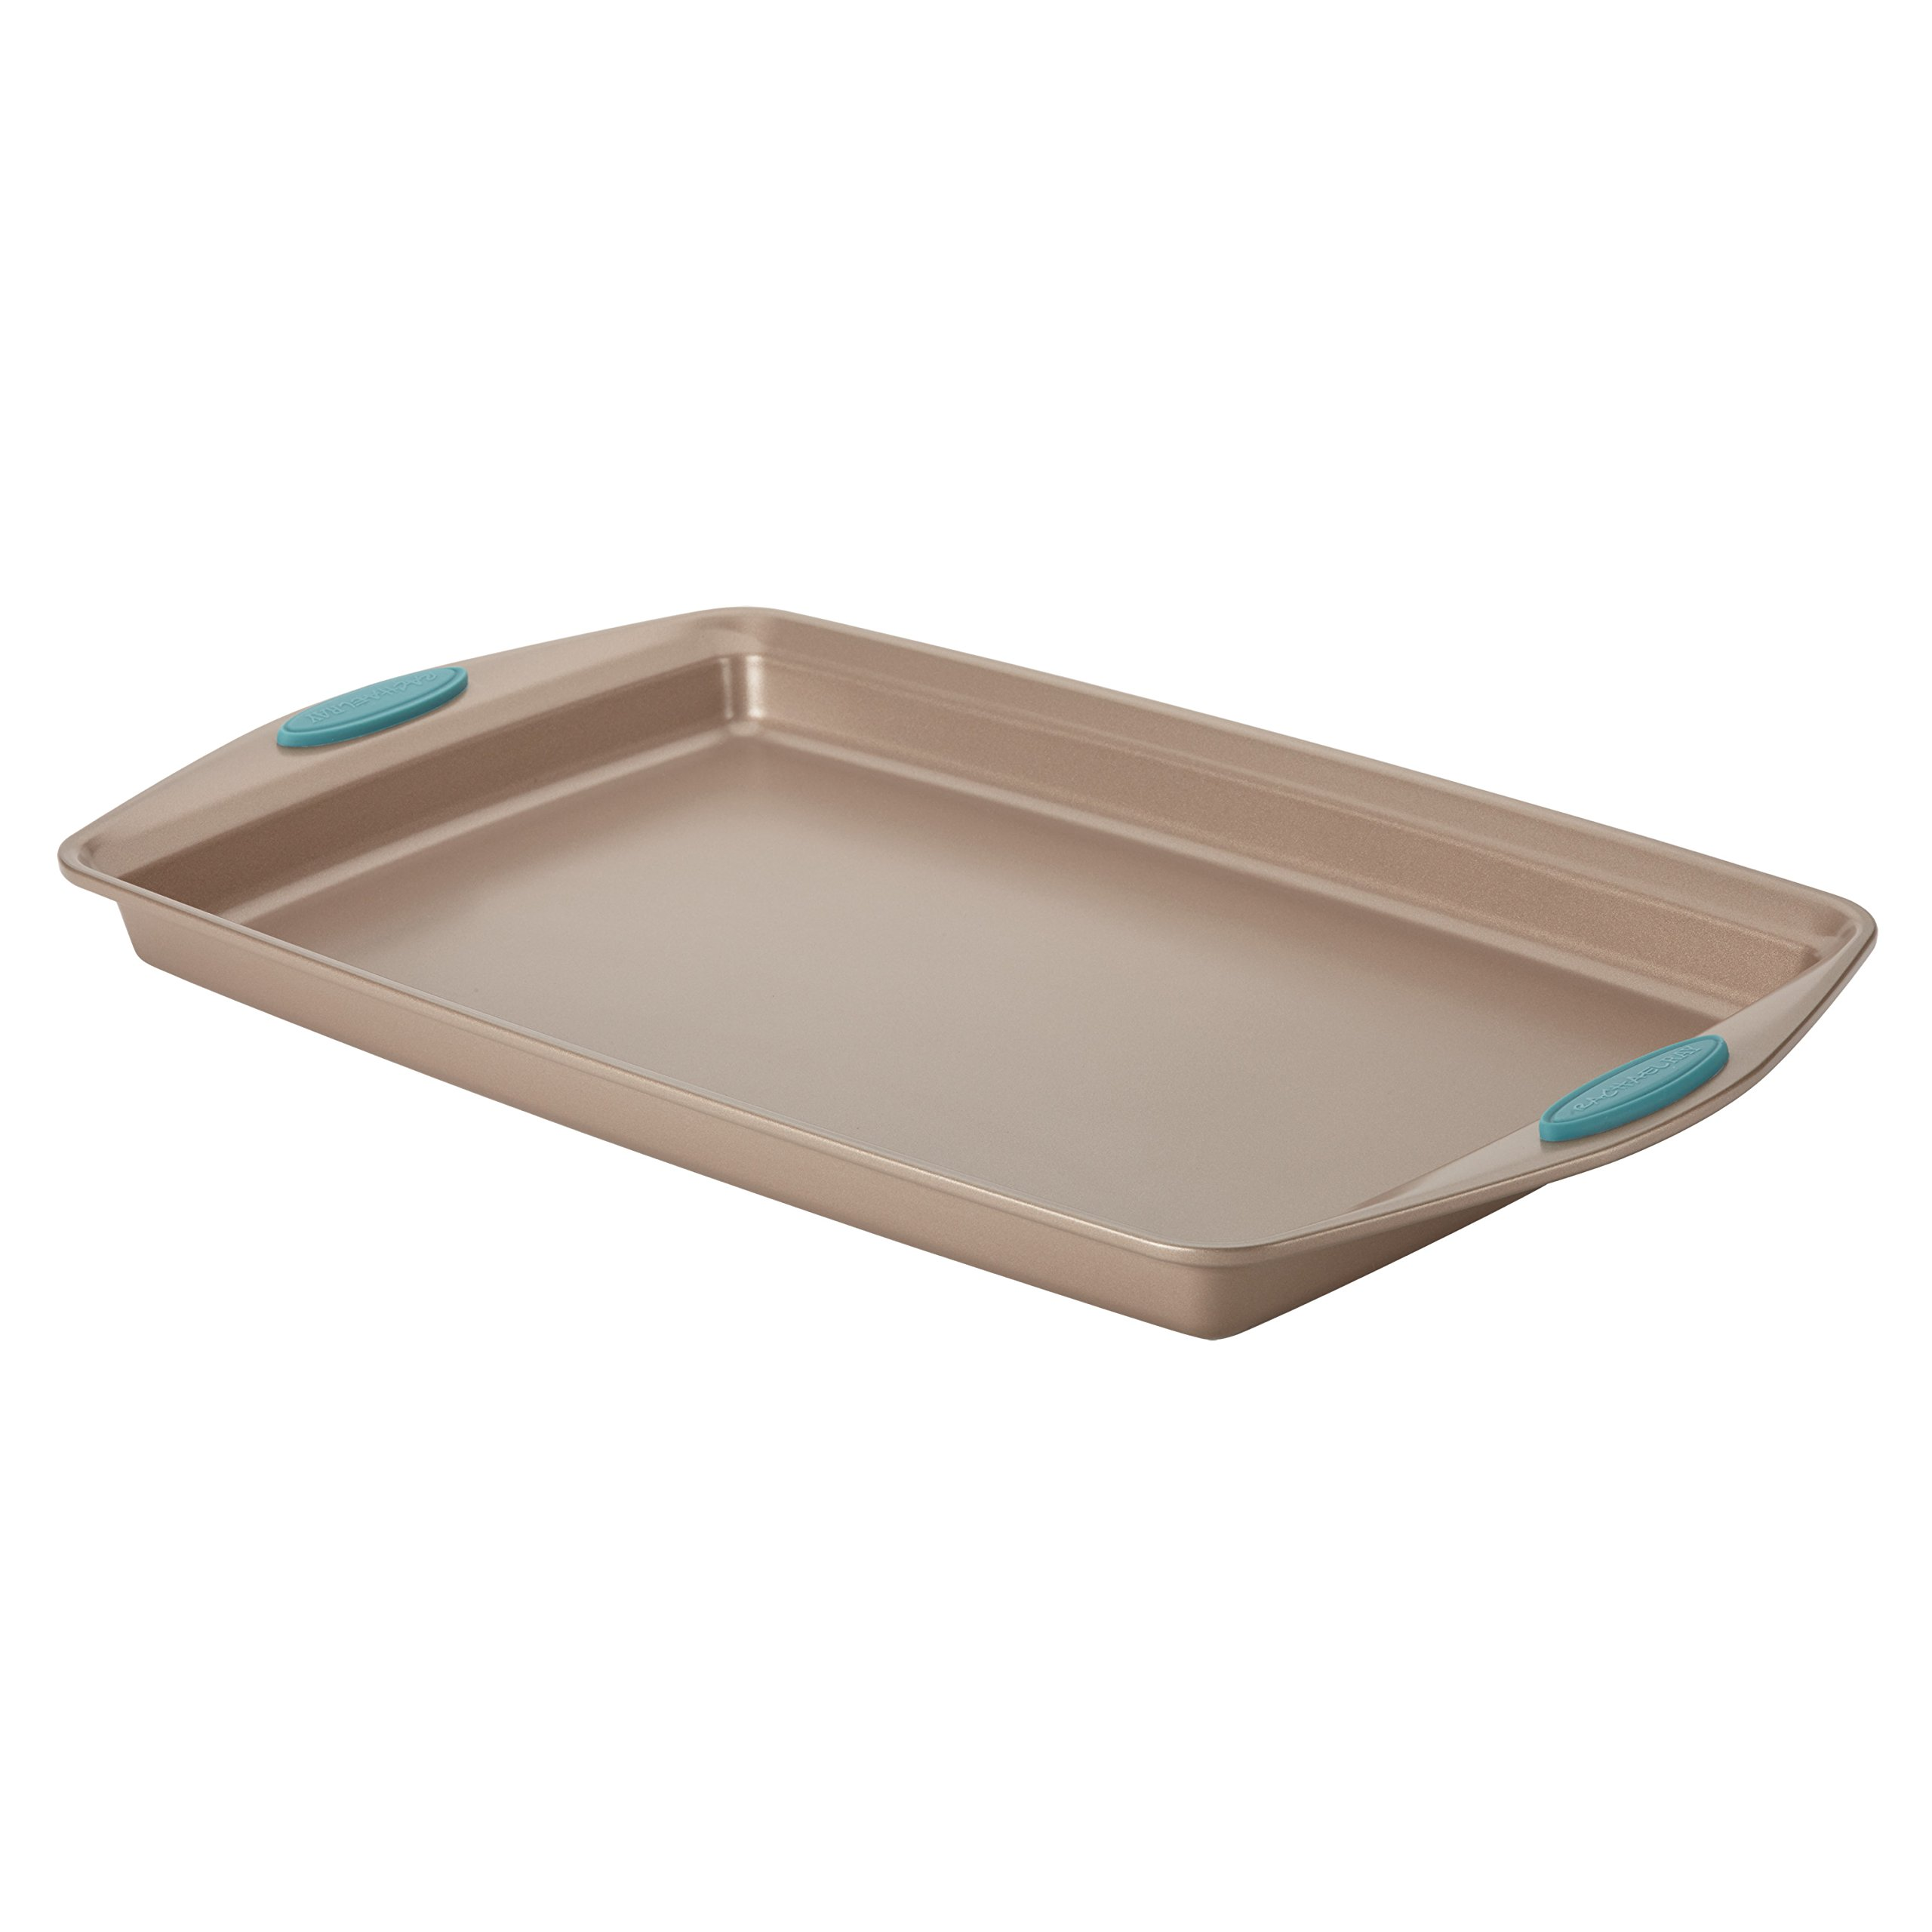 Rachael Ray Cucina Nonstick Bakeware Baking Pan/Cookie Sheet, 11-Inch x 17-Inch, Latte Brown, Agave Blue Handle Grips